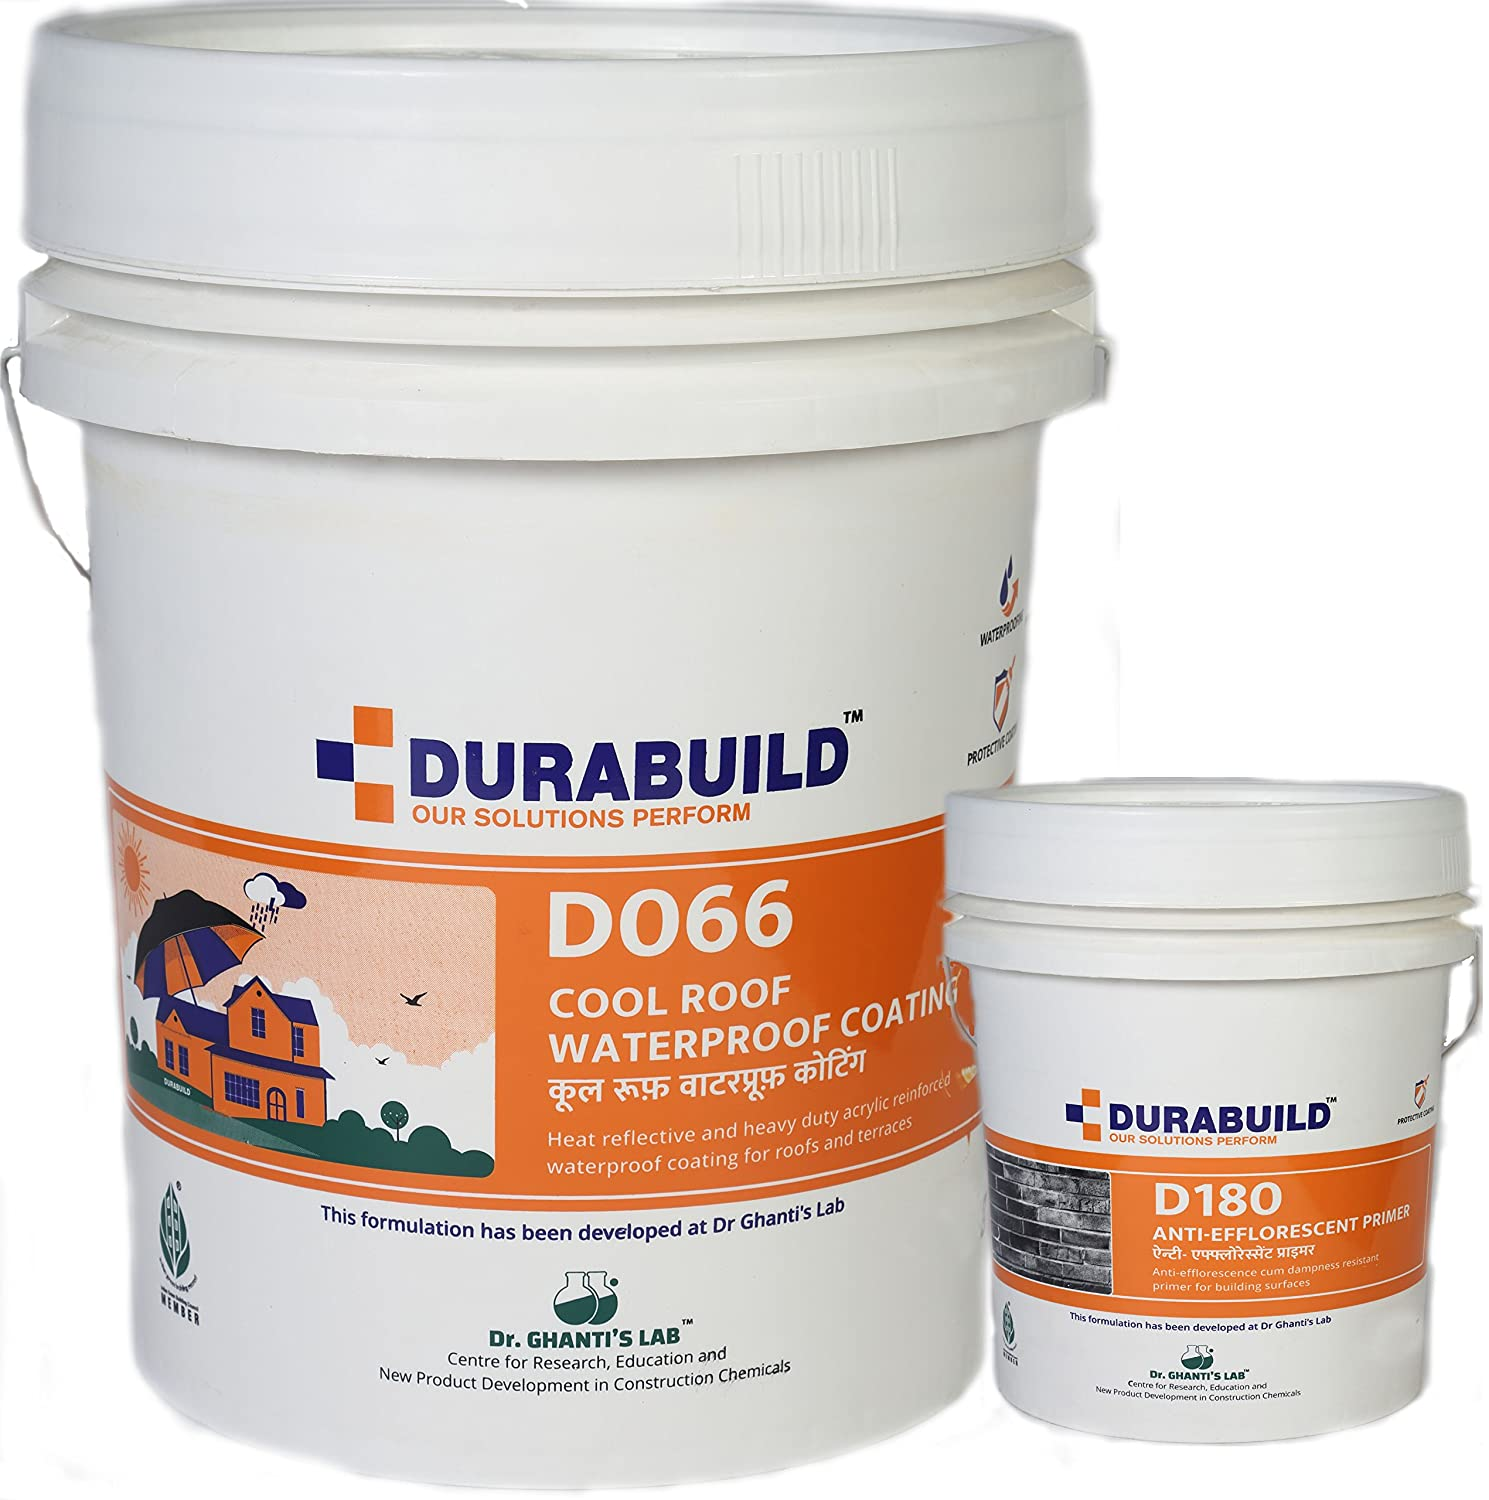 Durabuild Acrylic Reinforced Cool Roof Waterproof Coating For Terraces 5 Kg With 1 Kg D180 Anti Eflorescent Primer White Amazon In Industrial Scientific